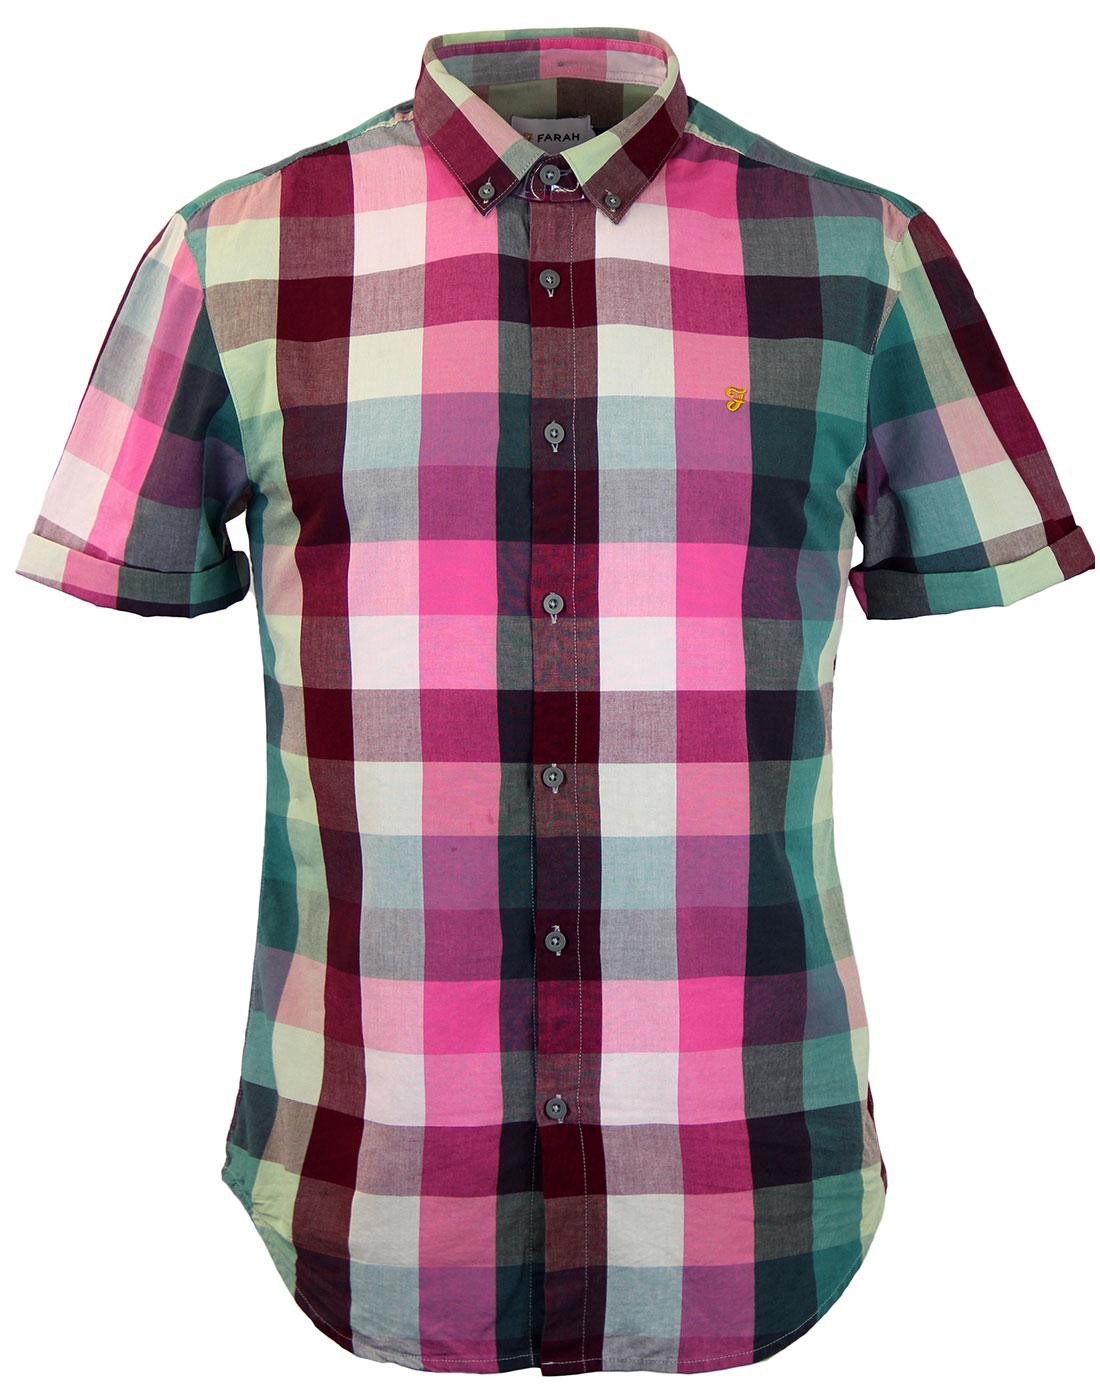 Arogan FARAH Retro Yarn Dyed S/S Mod Check Shirt